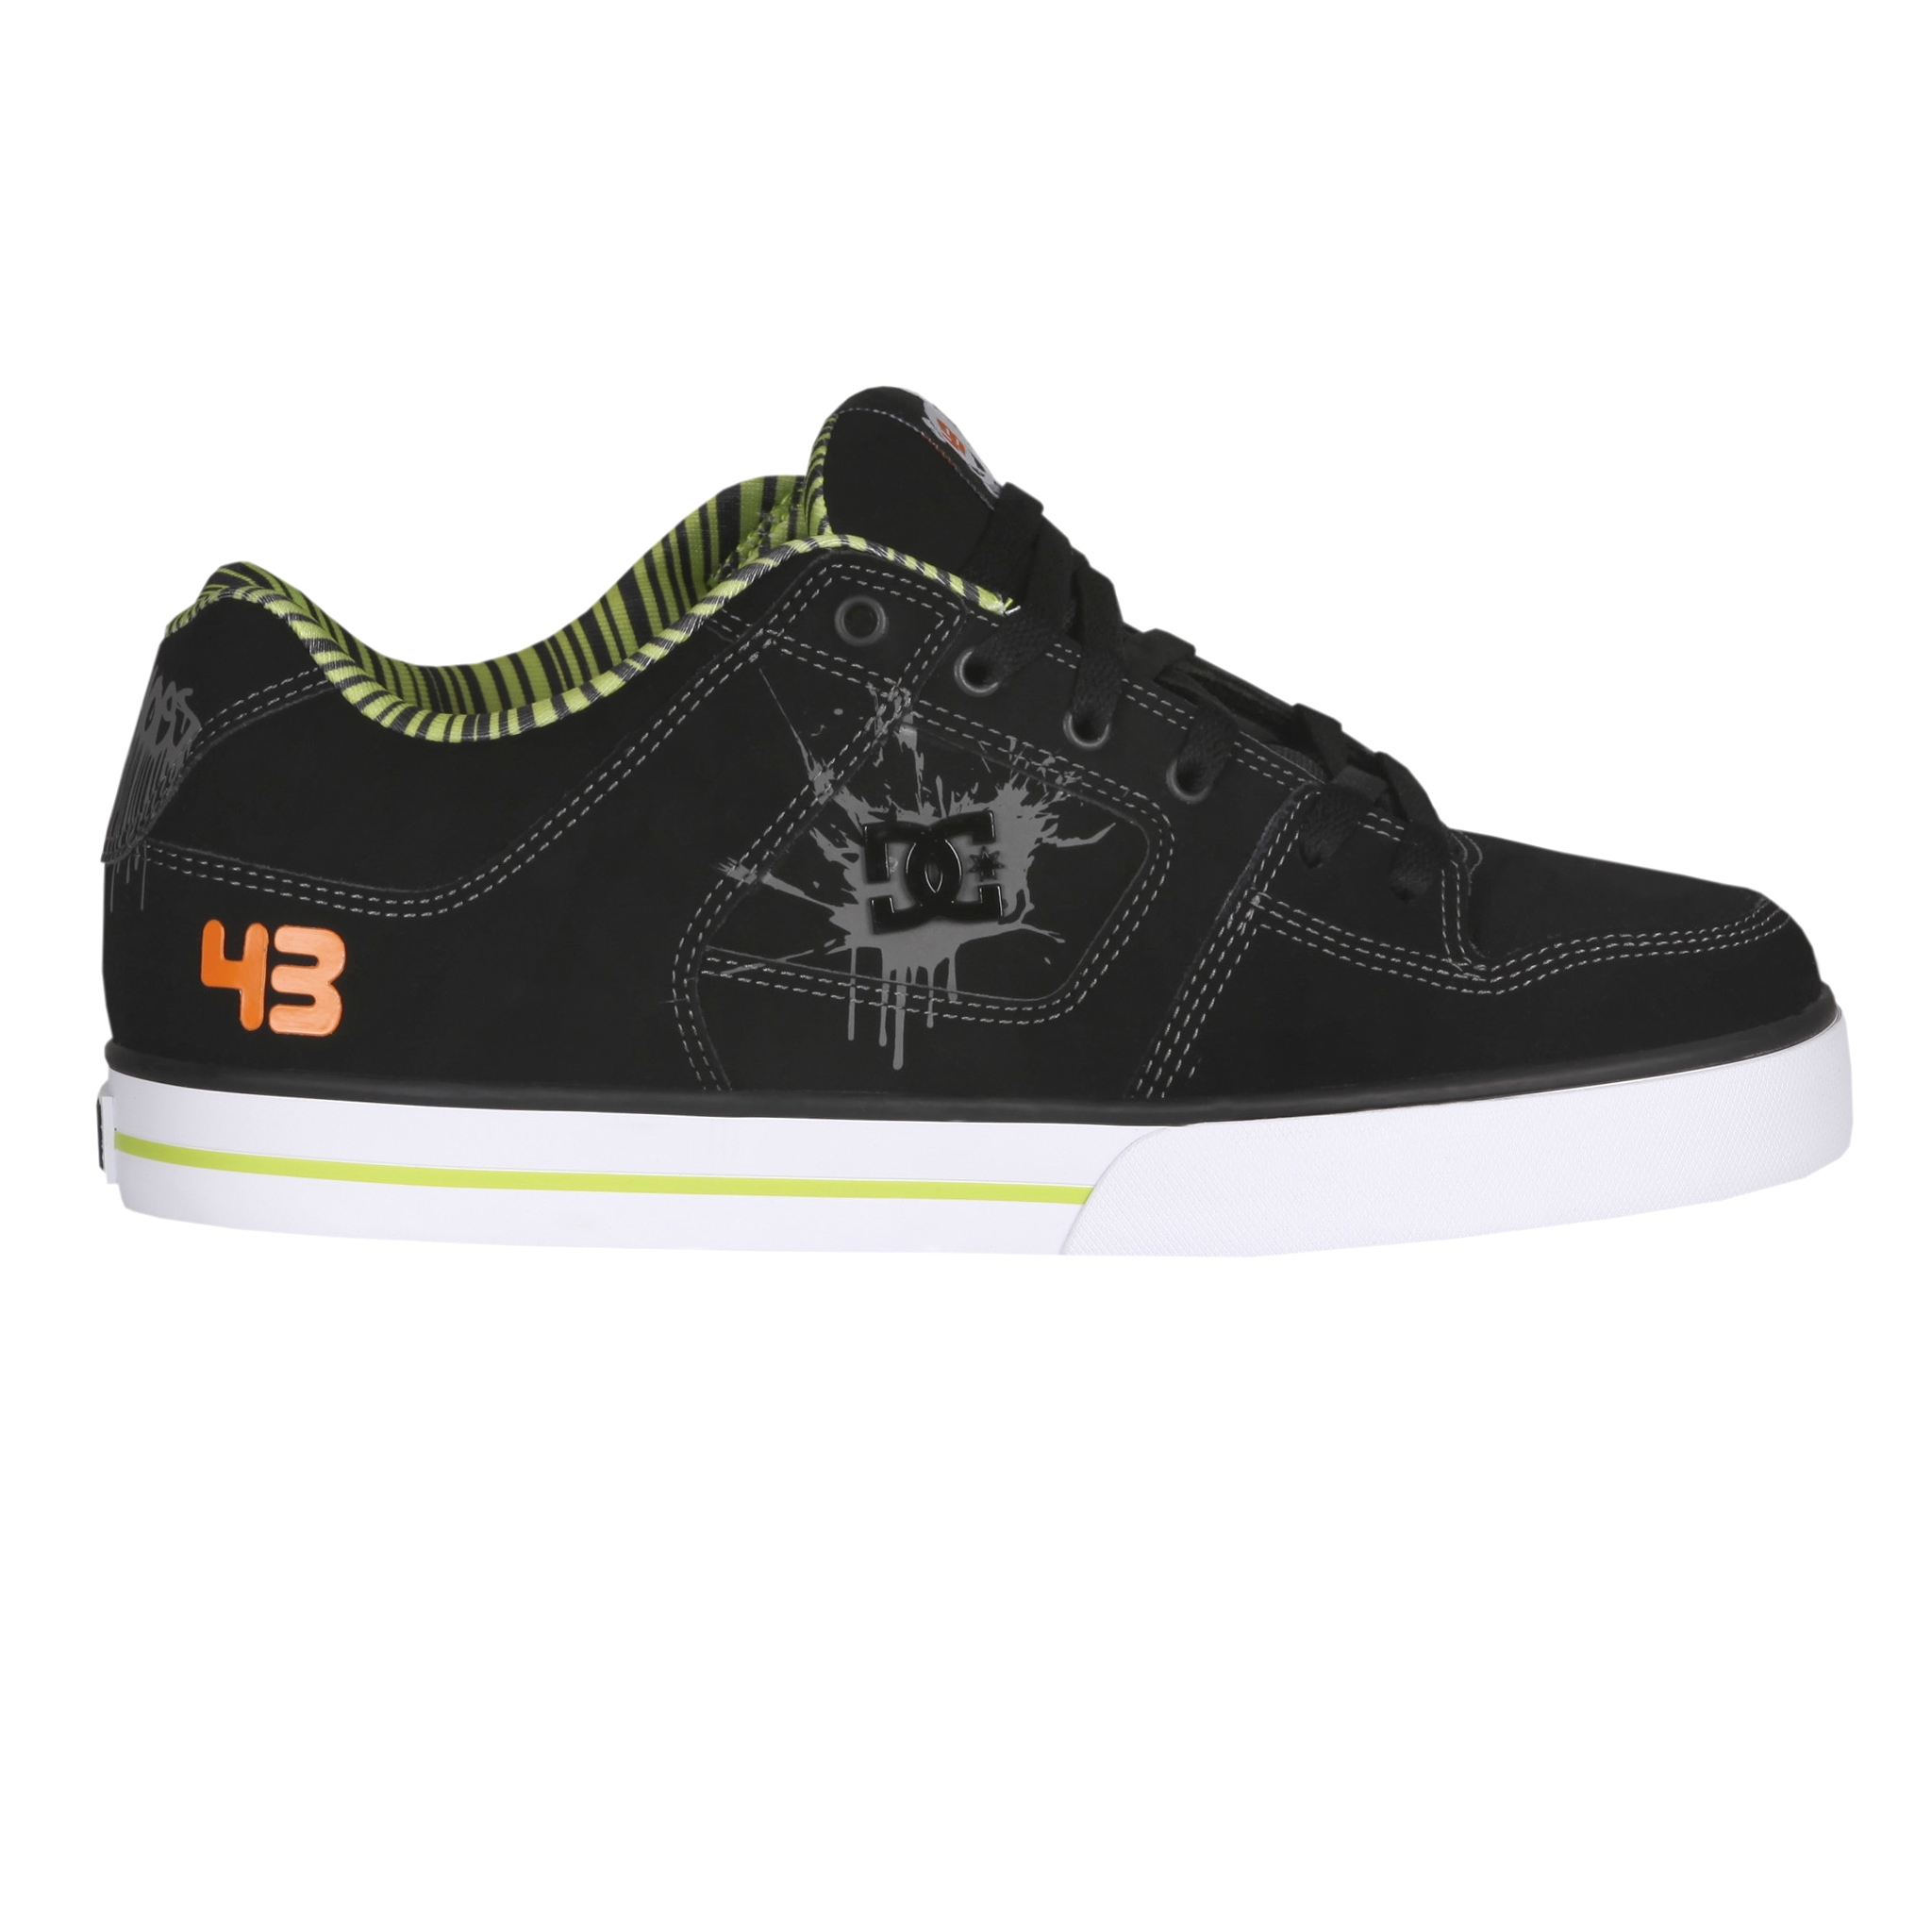 71335 DC SHOES Chaussures PURE SLIM Noir3 So, like I said, you are getting on a new band for not a lot of money  but ...